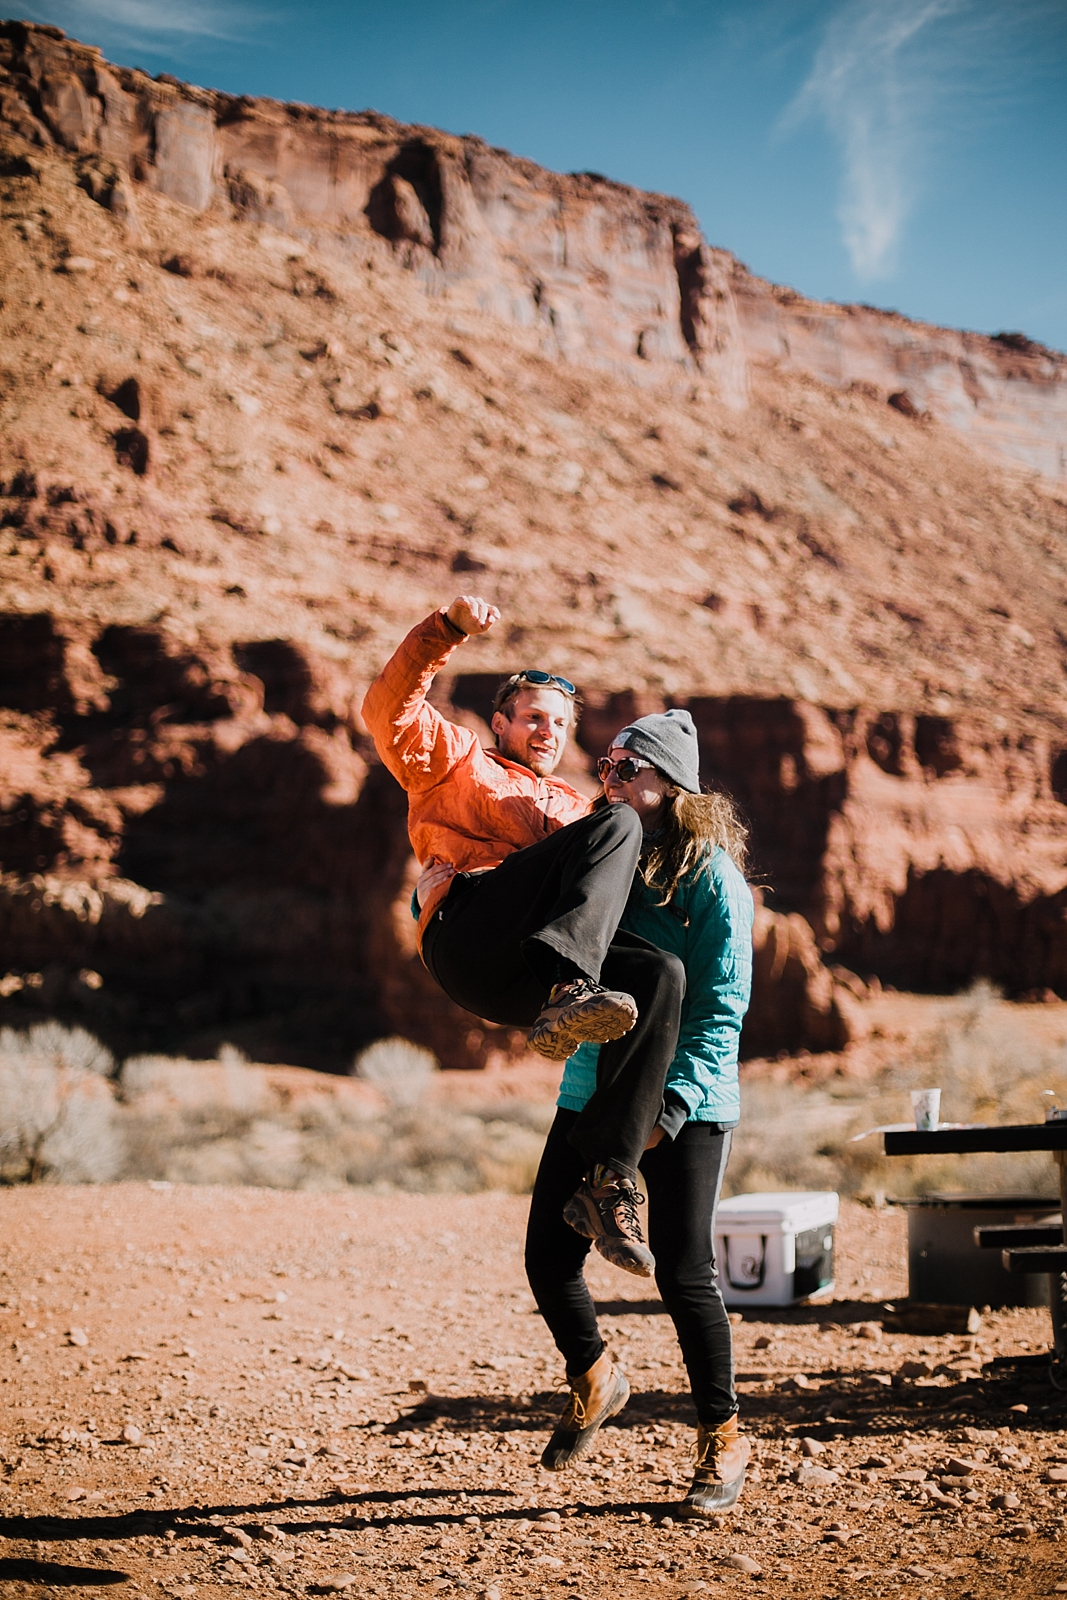 moab-photographer-camp-couples-adventure-session_0005.jpg